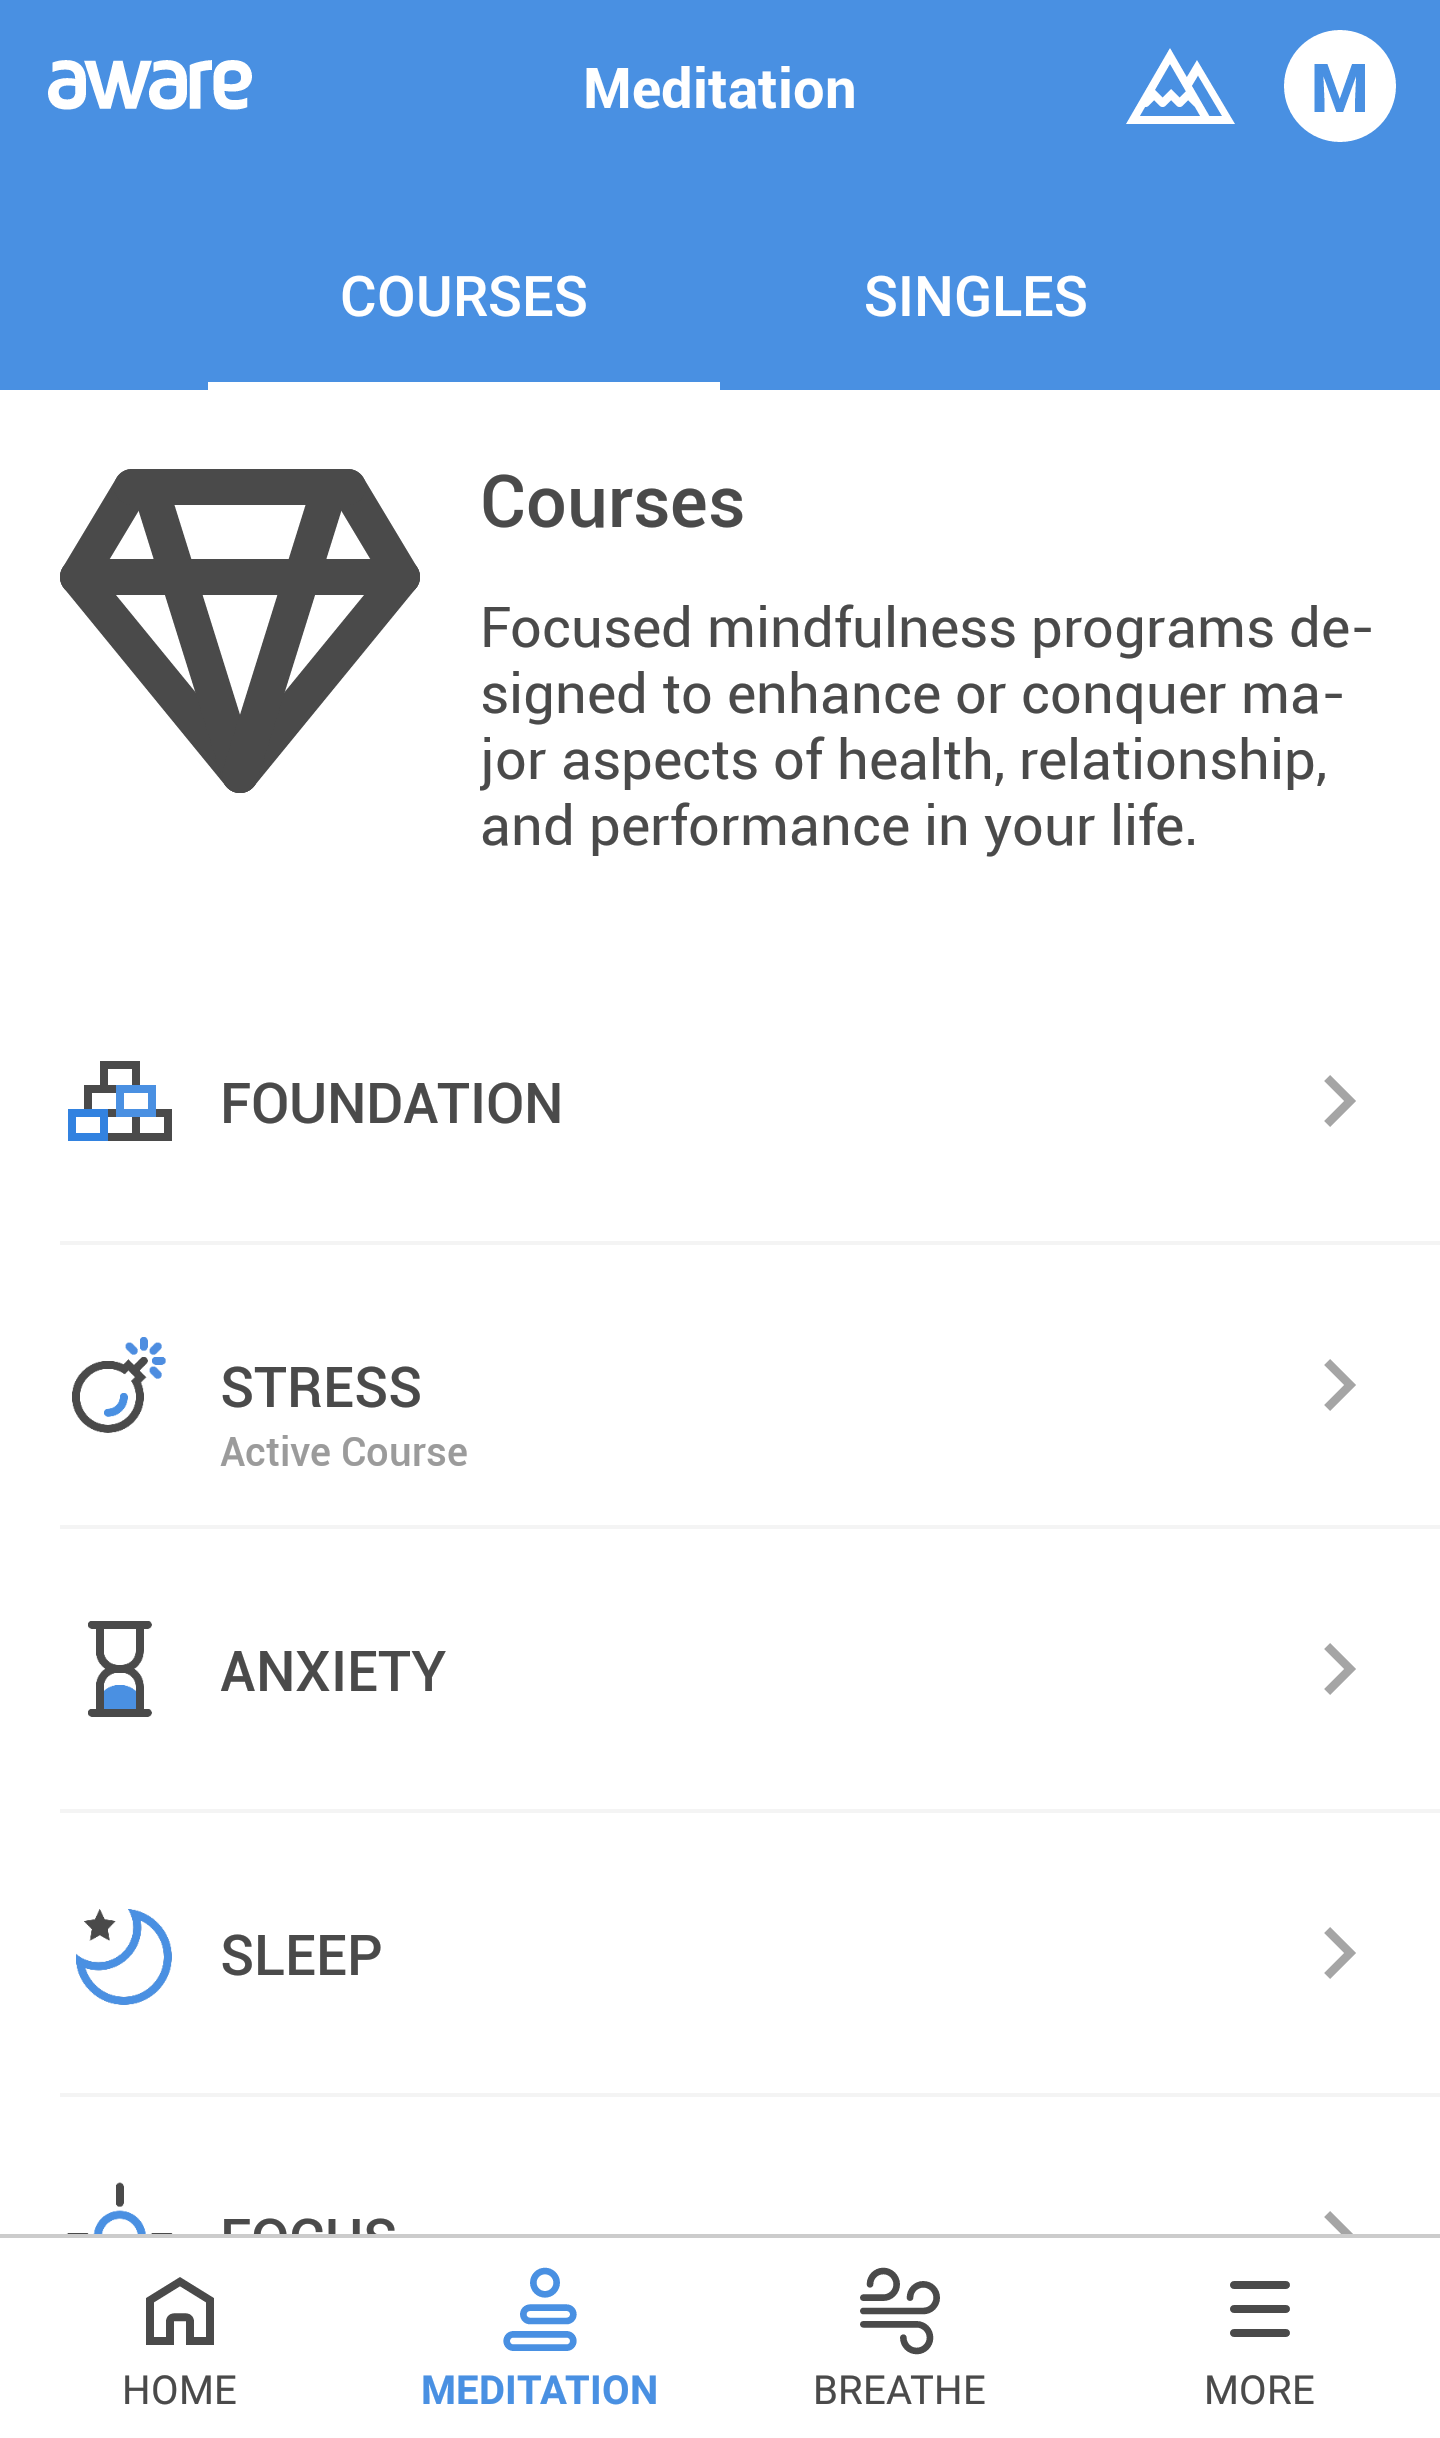 A review of the Aware meditation app - download it now with 50% off!